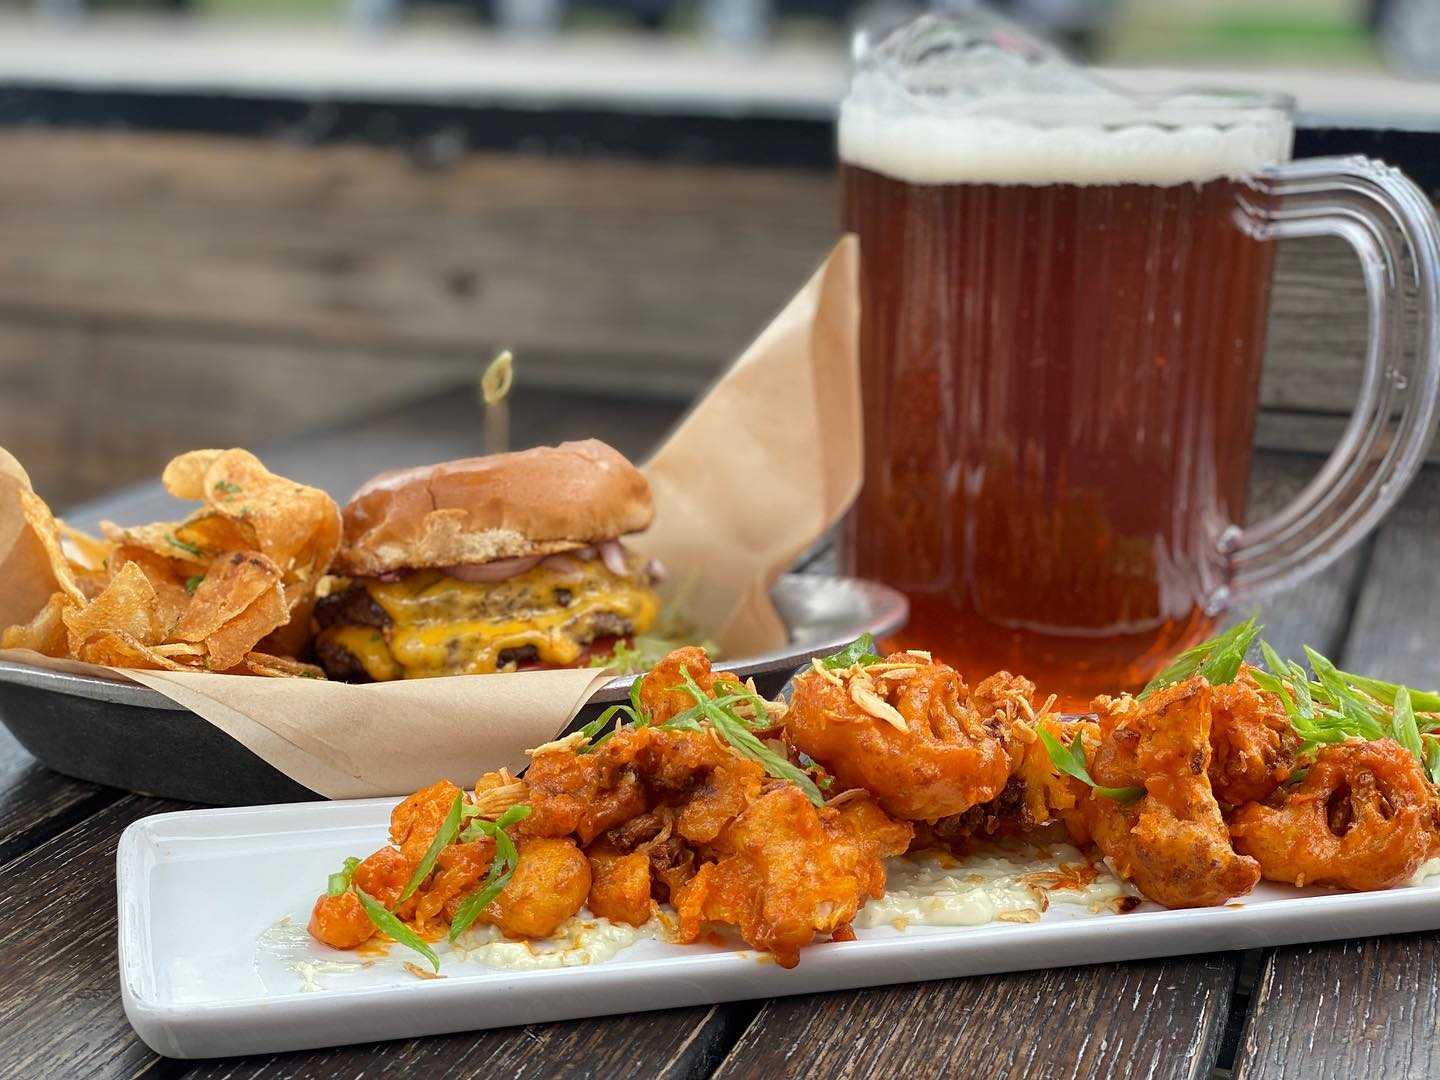 image of food and beer at briar common denver